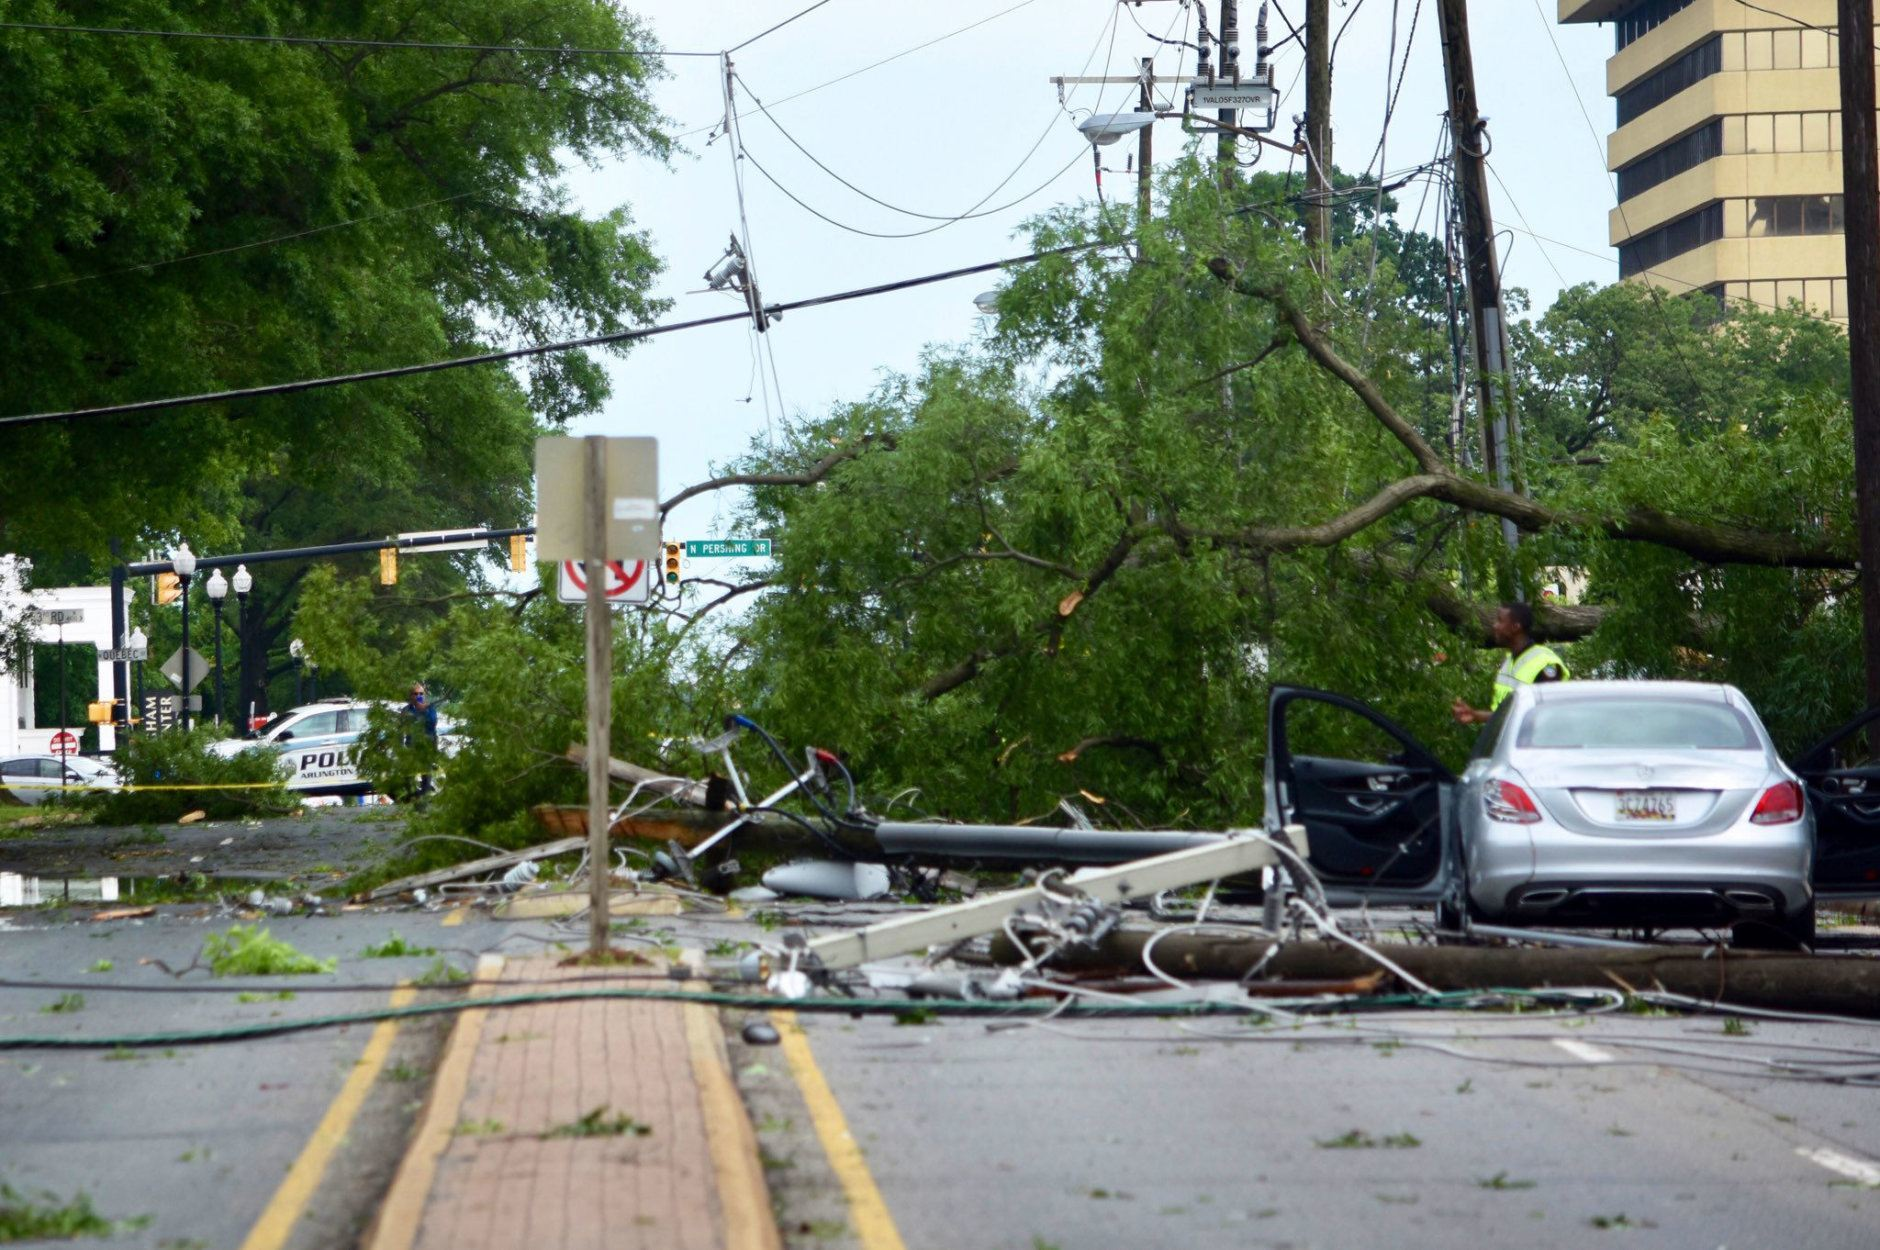 Glebe Road is blocked between Henderson Road and U.S. 50, and is expected to stay that way for hours after Thursday's storm blew down a live oak tree and three poles, along with their wires. (WTOP/Dave Dildine)